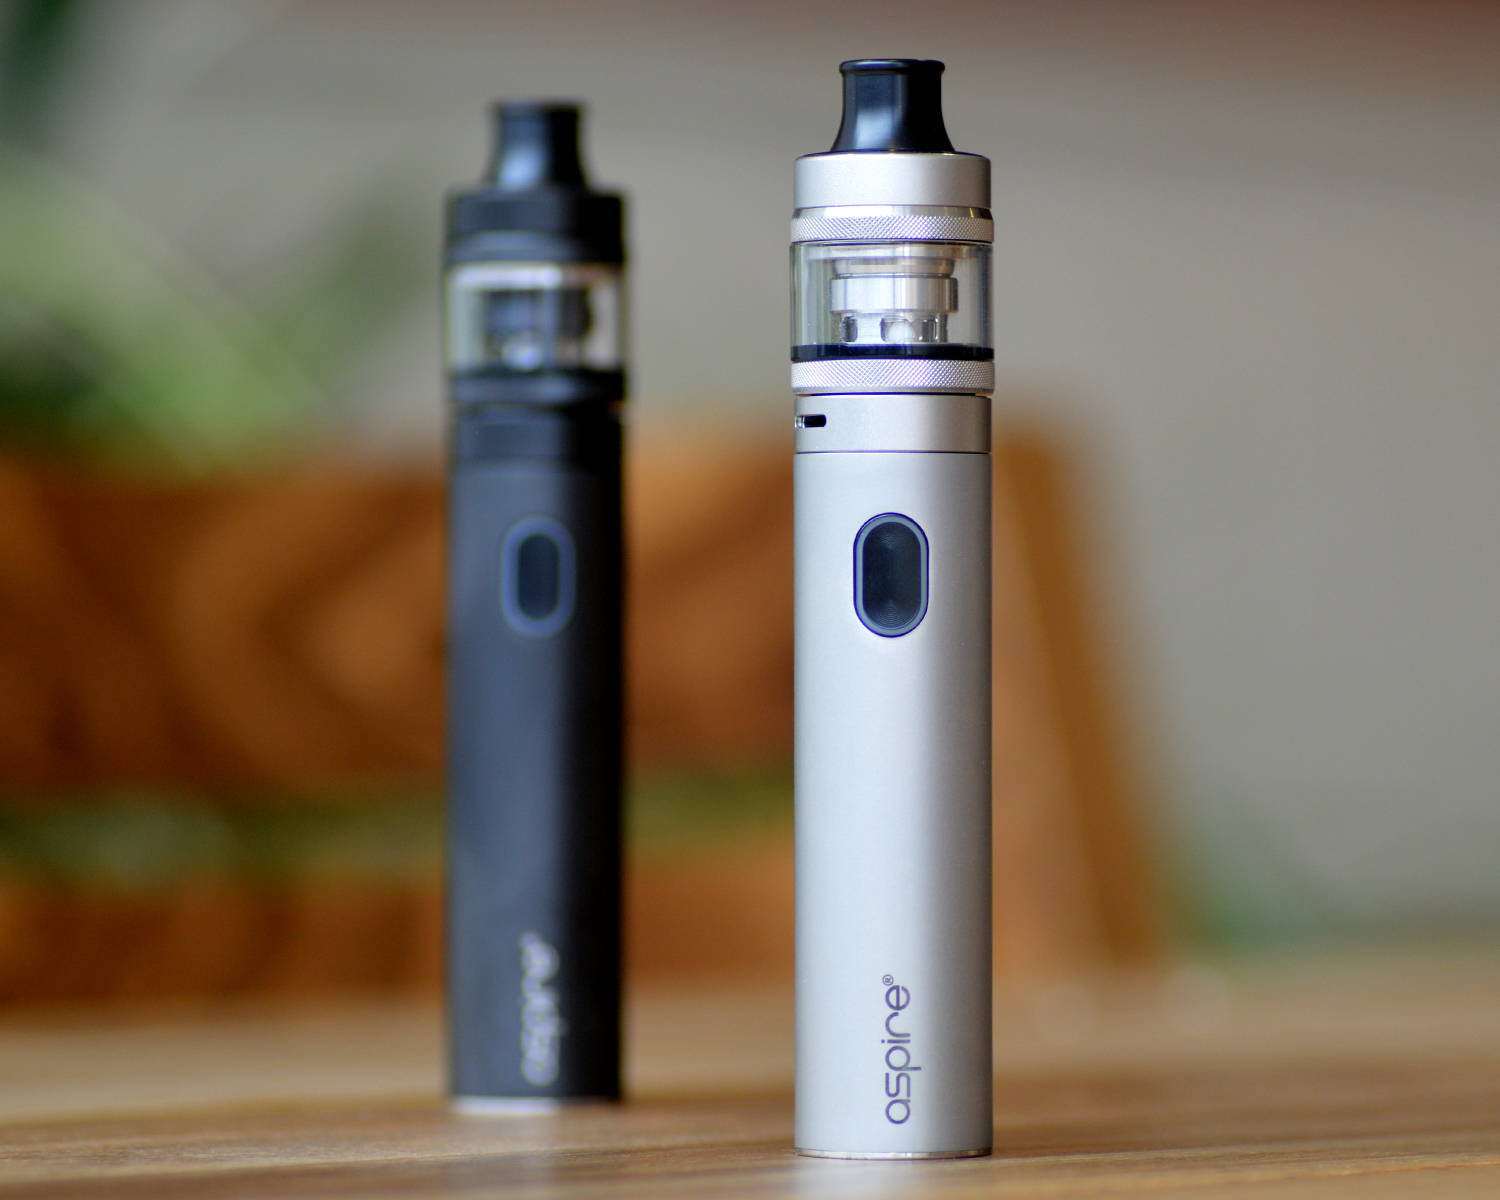 Aspire Tigon Kit in black and silver on a table